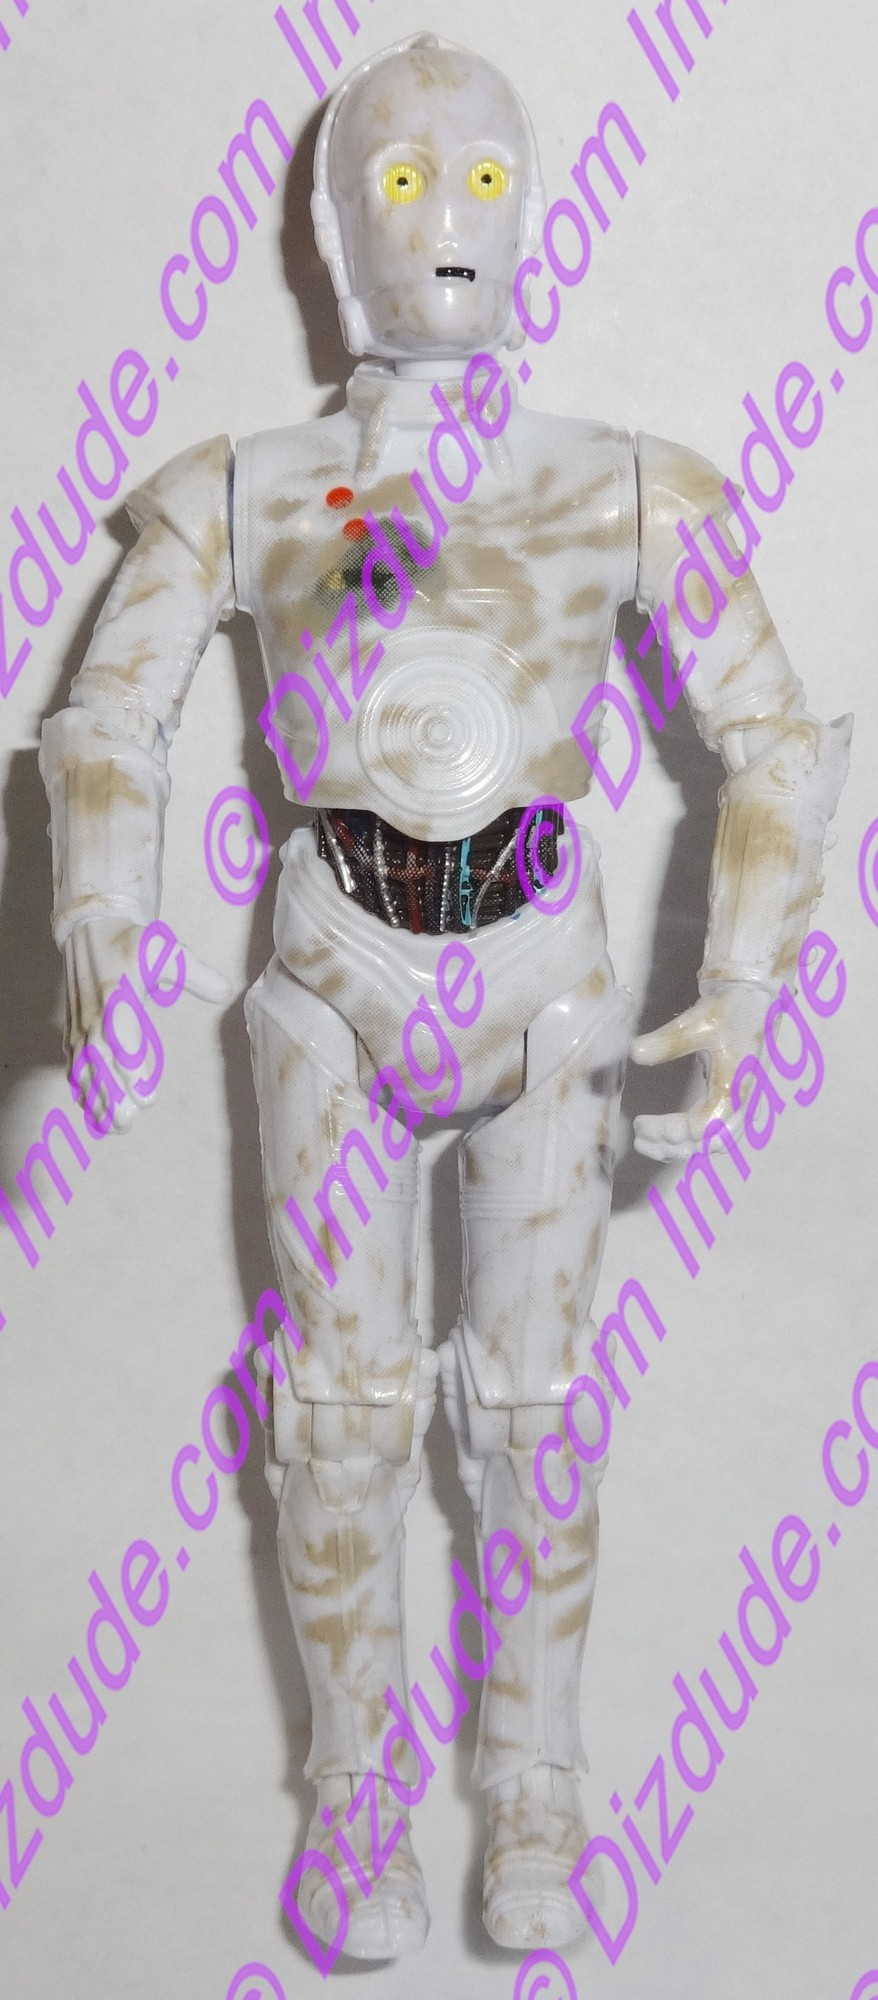 White 3PO Protocol Droid from Disney Star Wars Build-A-Droid Factory © Dizdude.com